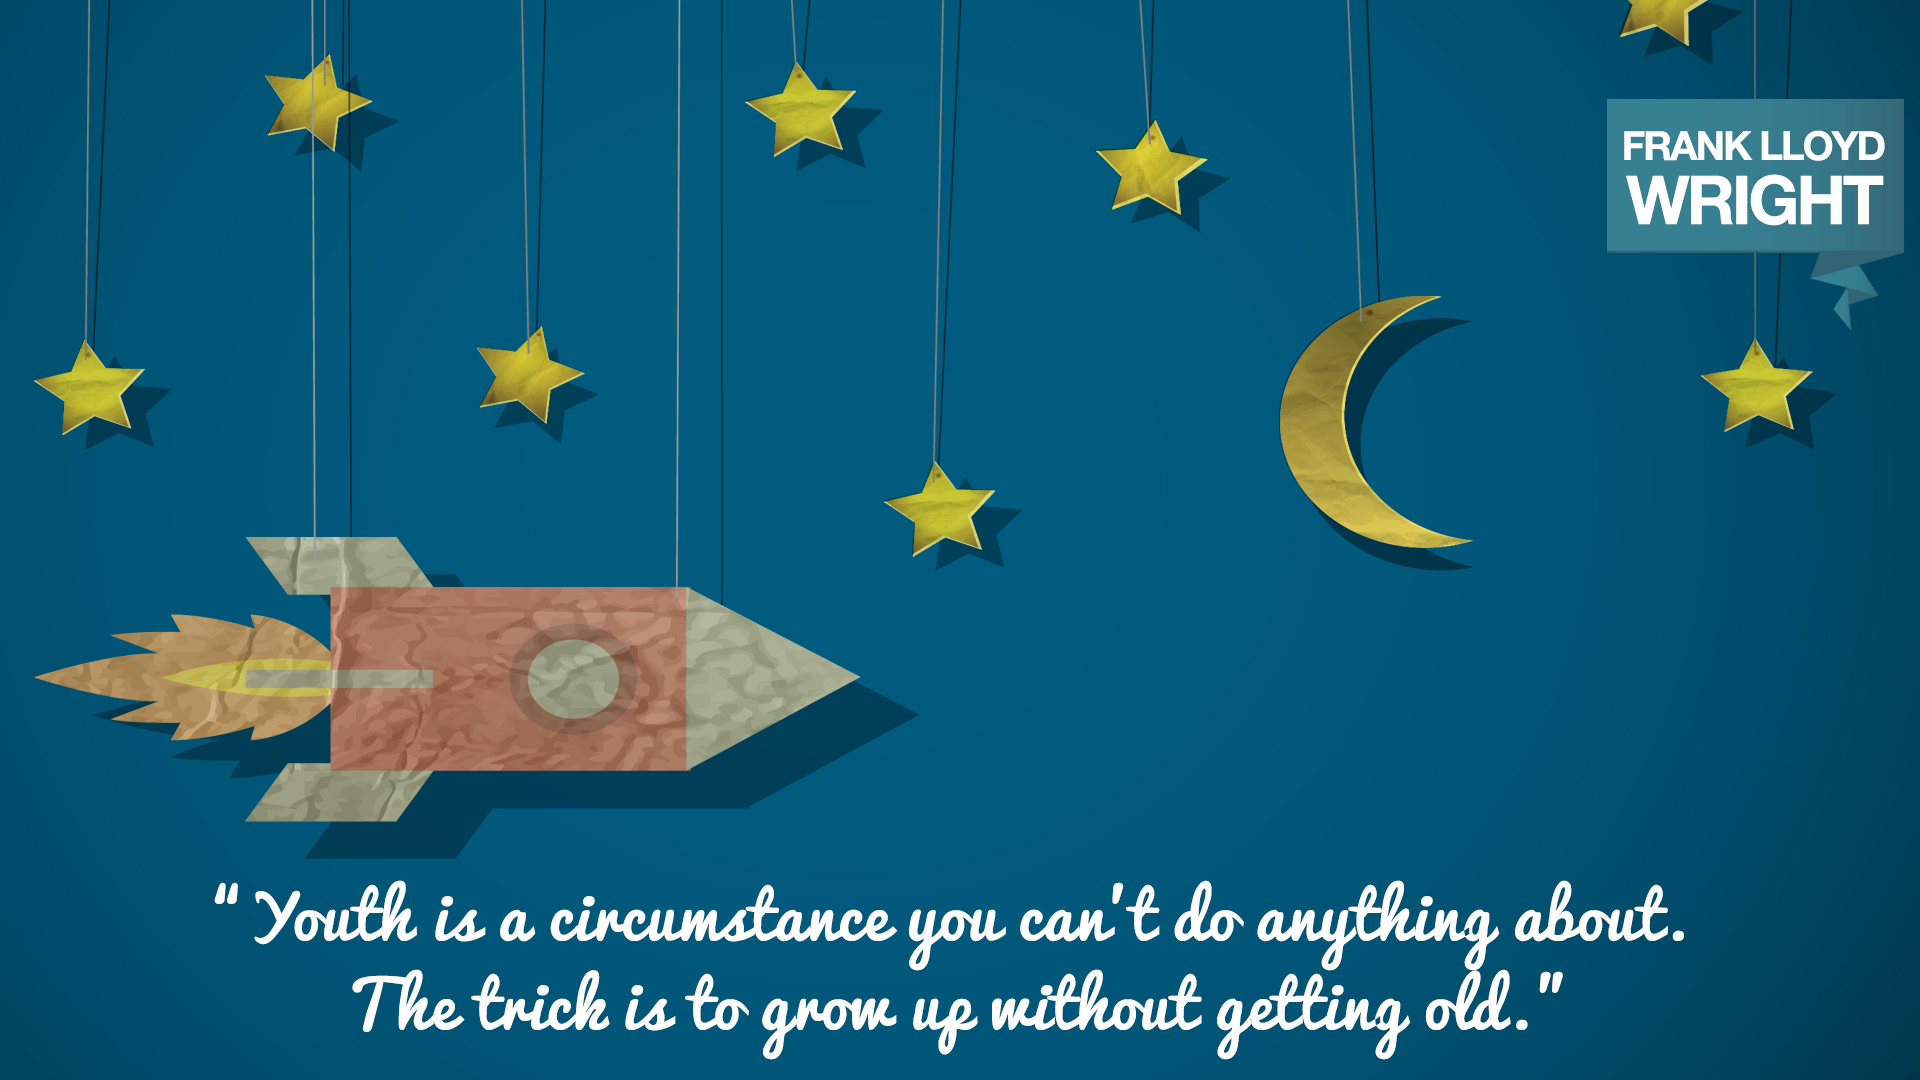 Youth is a circumstance you can't do anything about. The trick is to grow up without getting old. Frank Lloyd Wright